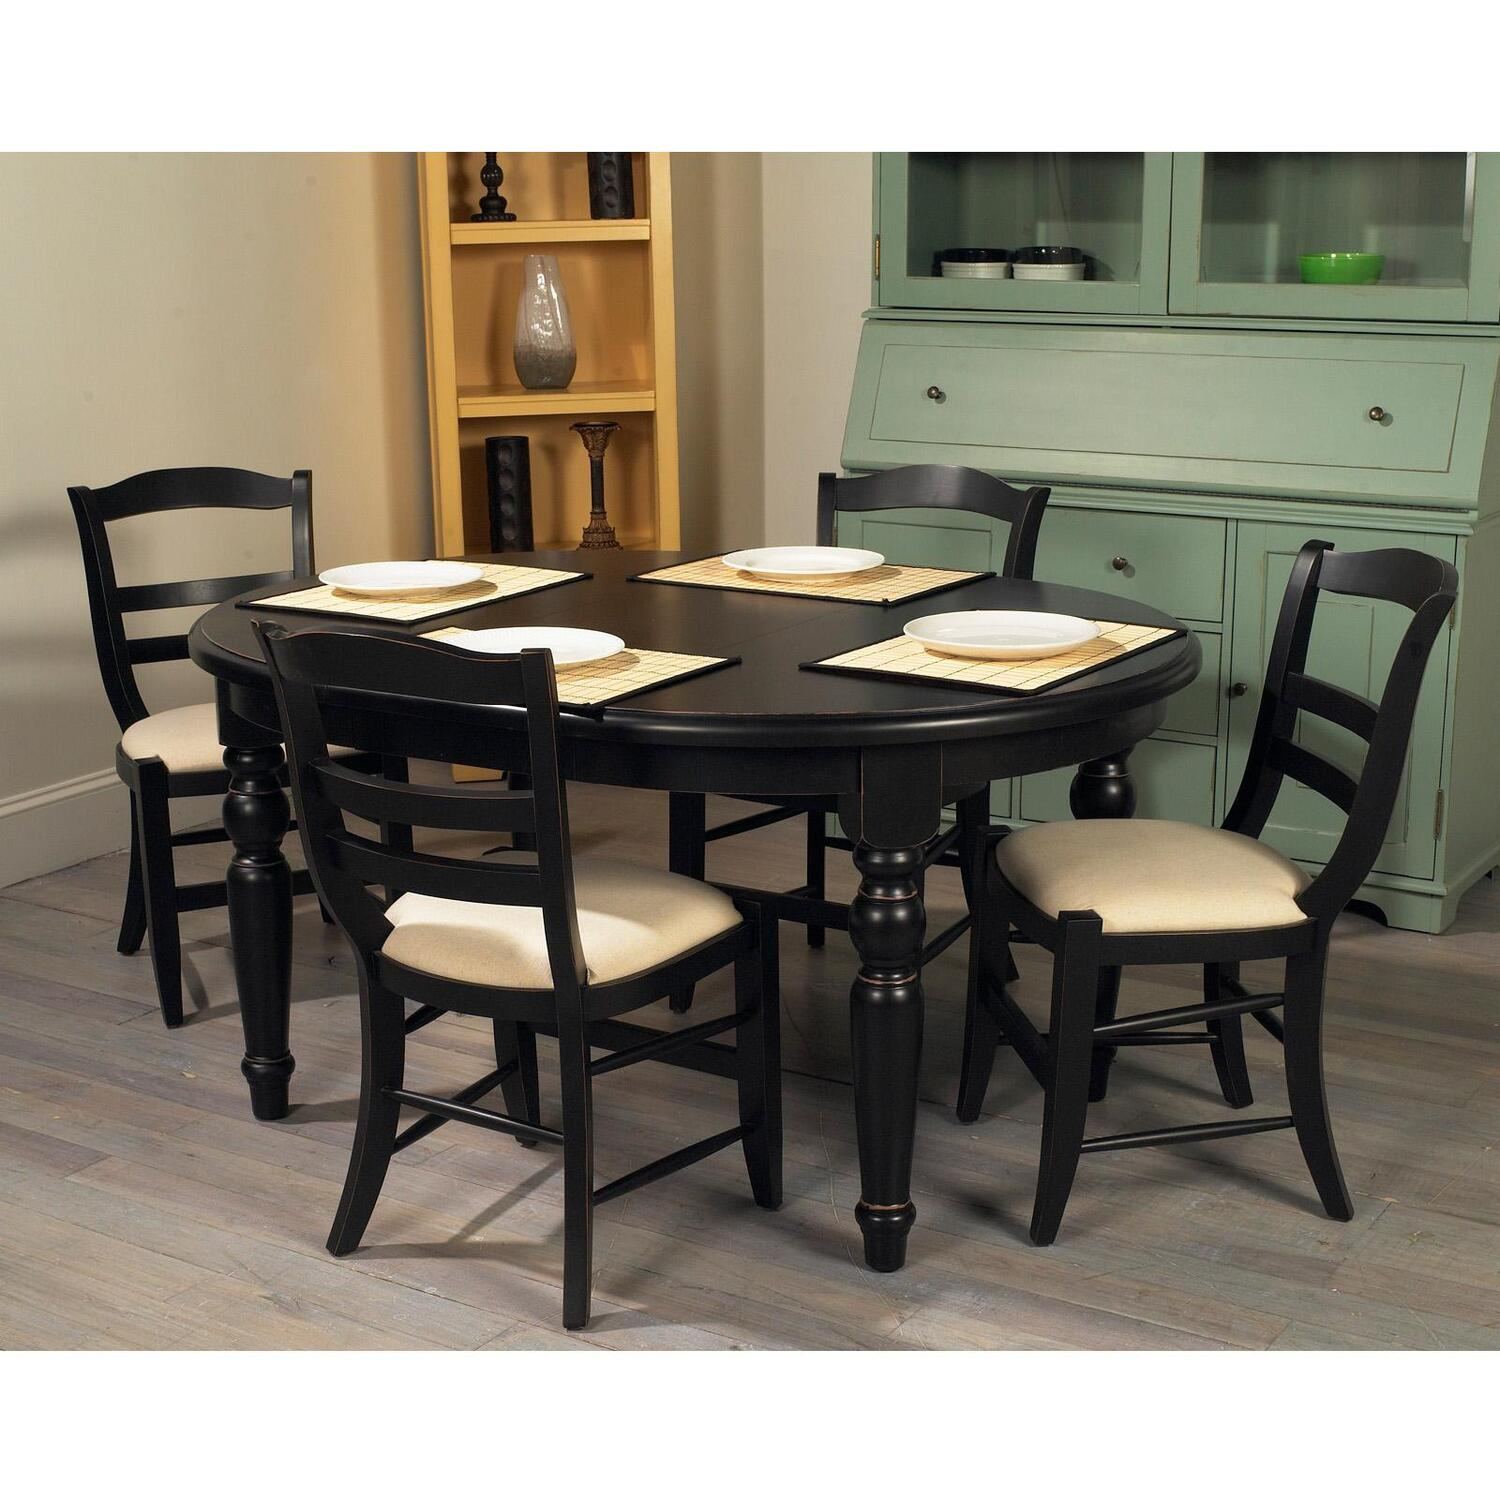 Oval Kitchen Table And Chairs: Dining Table: Dress Oval Dining Table